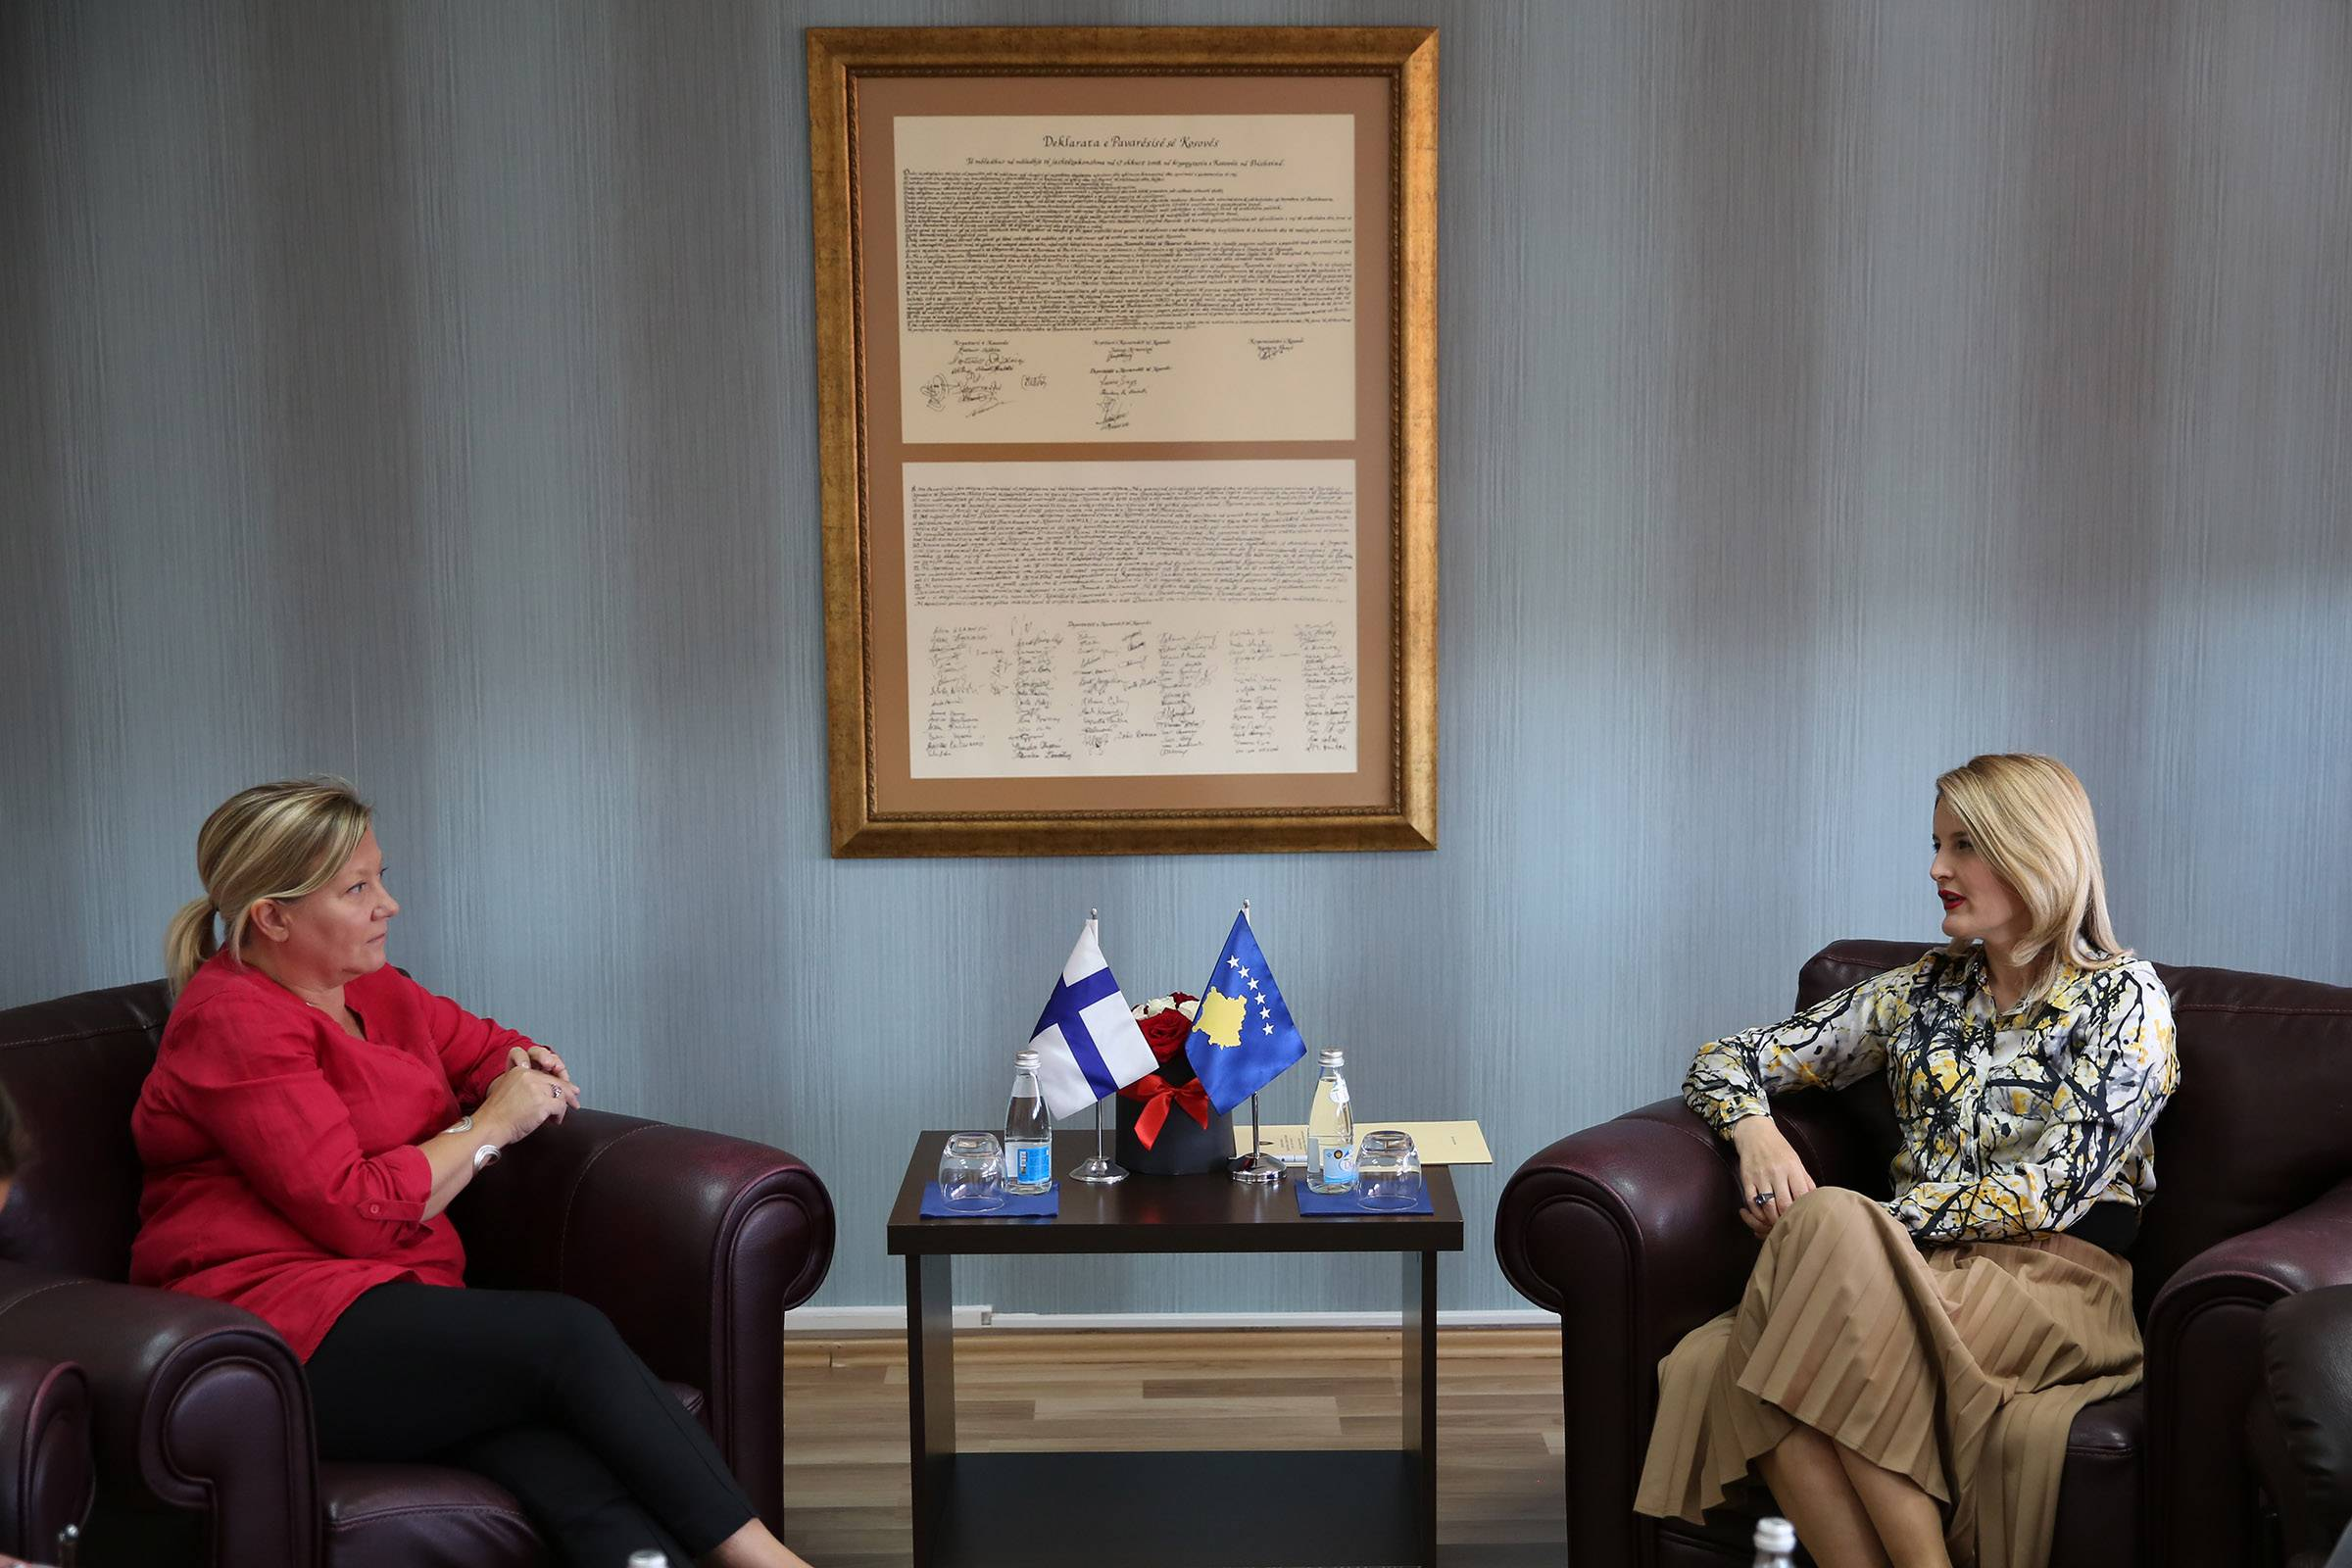 Minister Hoxha met with Ambassador Stjernvall: We look forward to finalizing positive results during Finland's EU Presidency